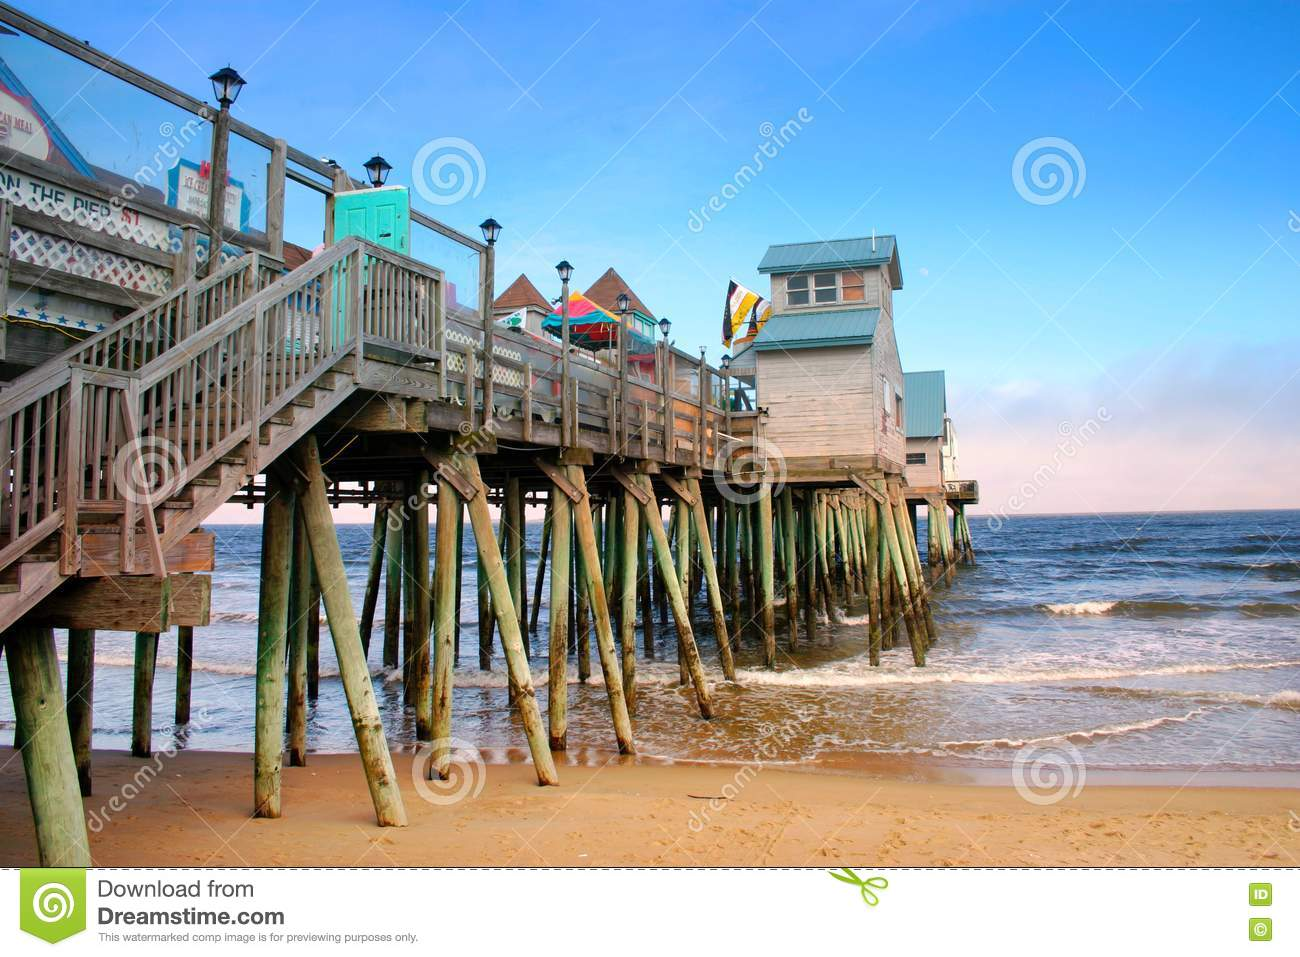 old orchard beach online dating Free to join & browse - 1000's of singles in old orchard beach, maine - interracial dating, relationships & marriage online.